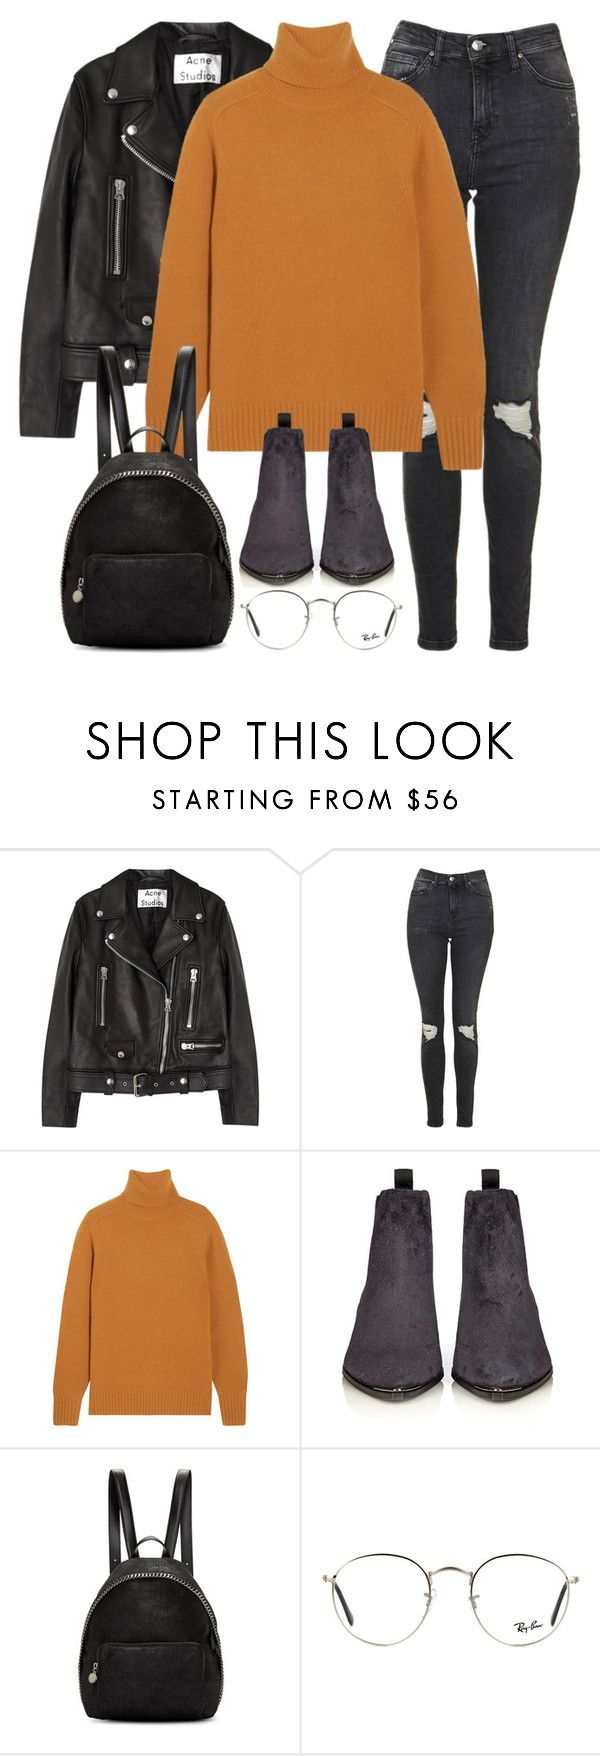 """Untitled #2878"" by elenaday on Polyvore featuring Acne Studios, Topshop, Chloé, STELLA McCARTNEY and Ray-Ban"